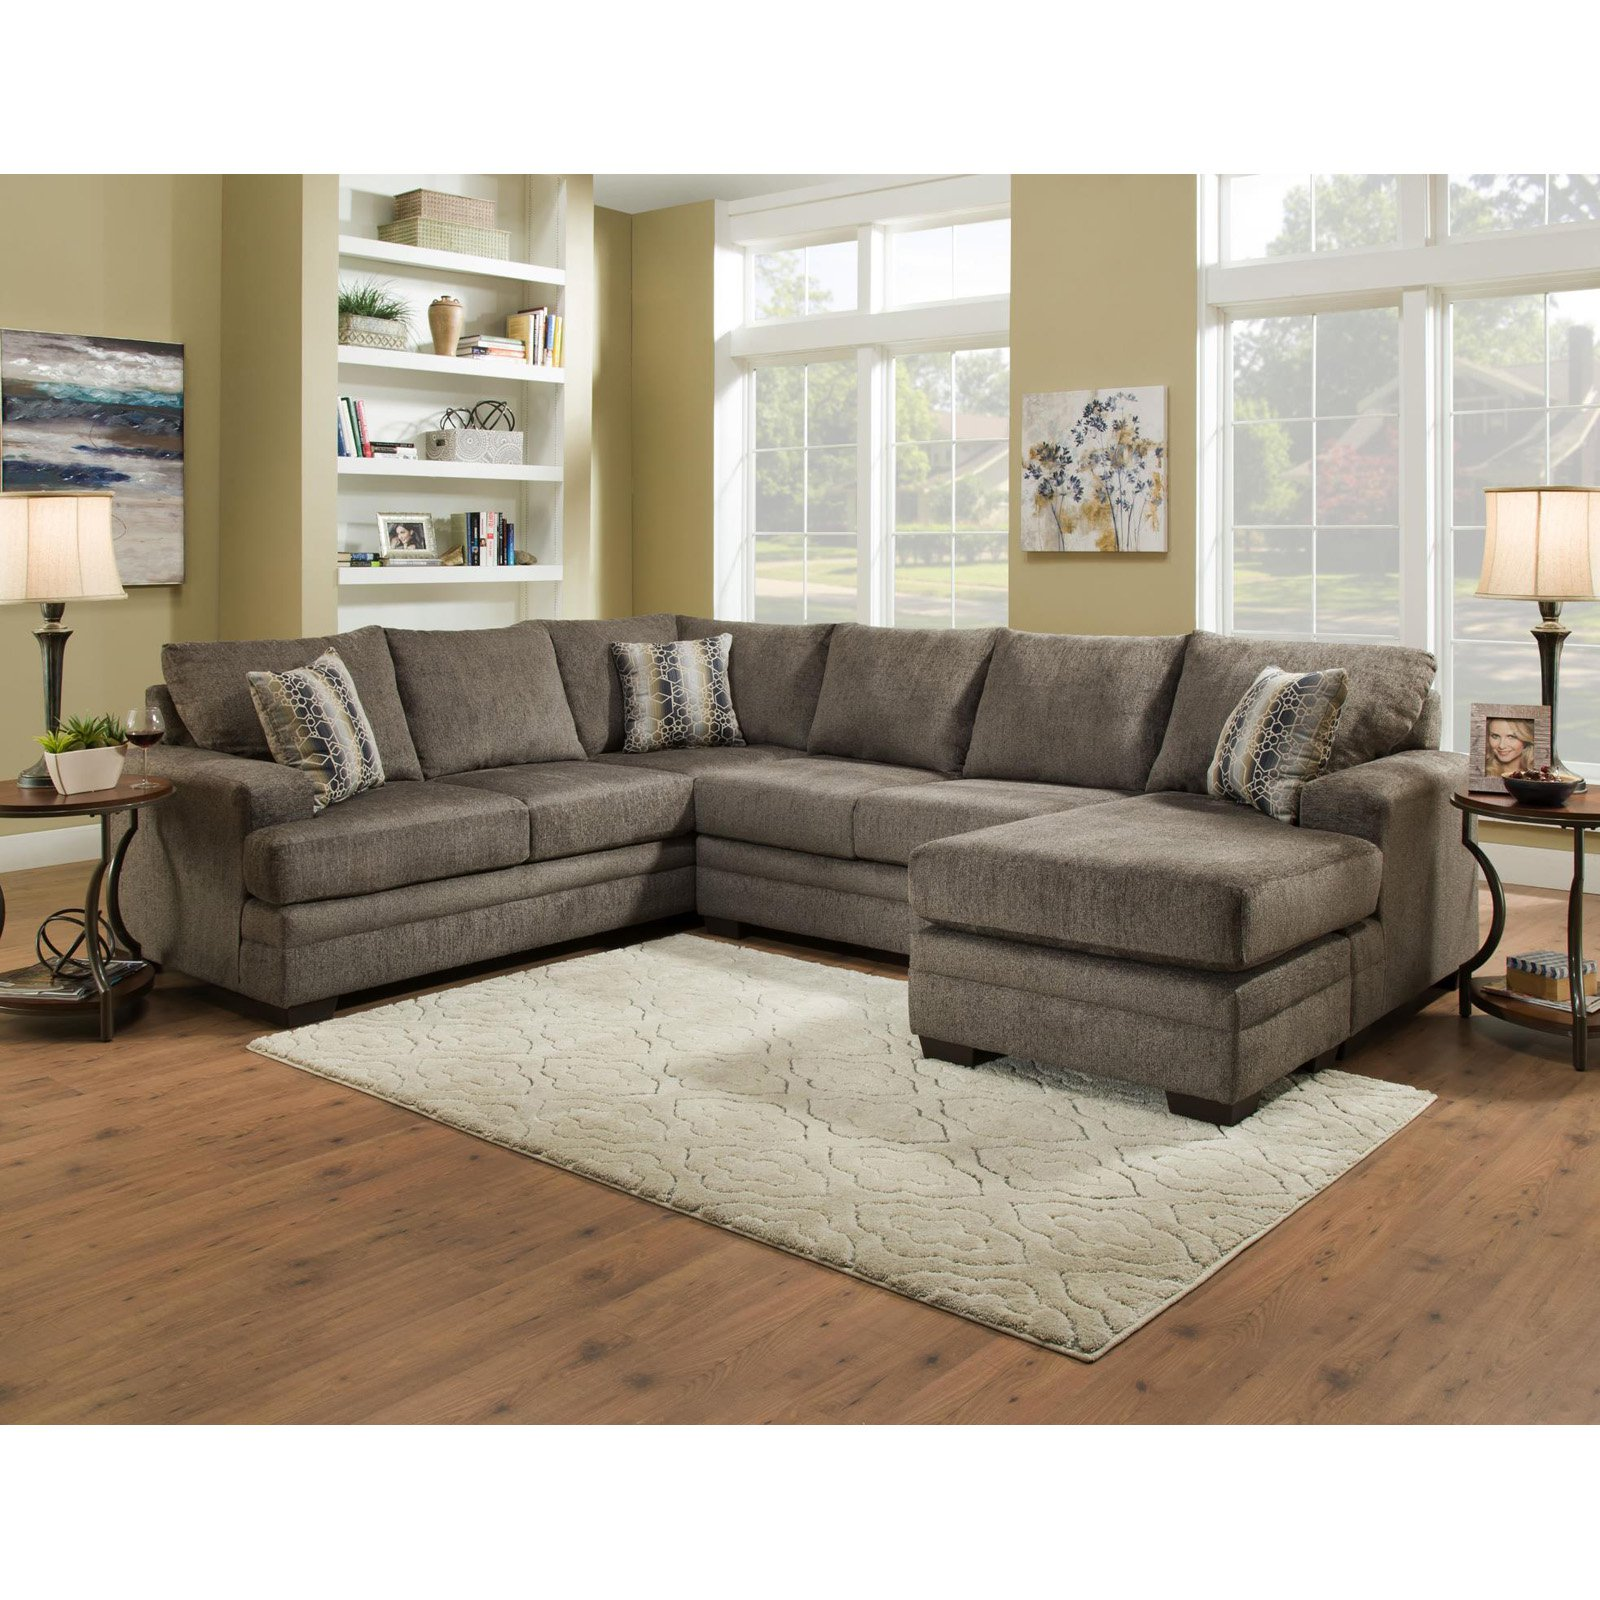 U Couch Chelsea Home Furniture Campbell 3 Piece U Shaped Sectional Sofa